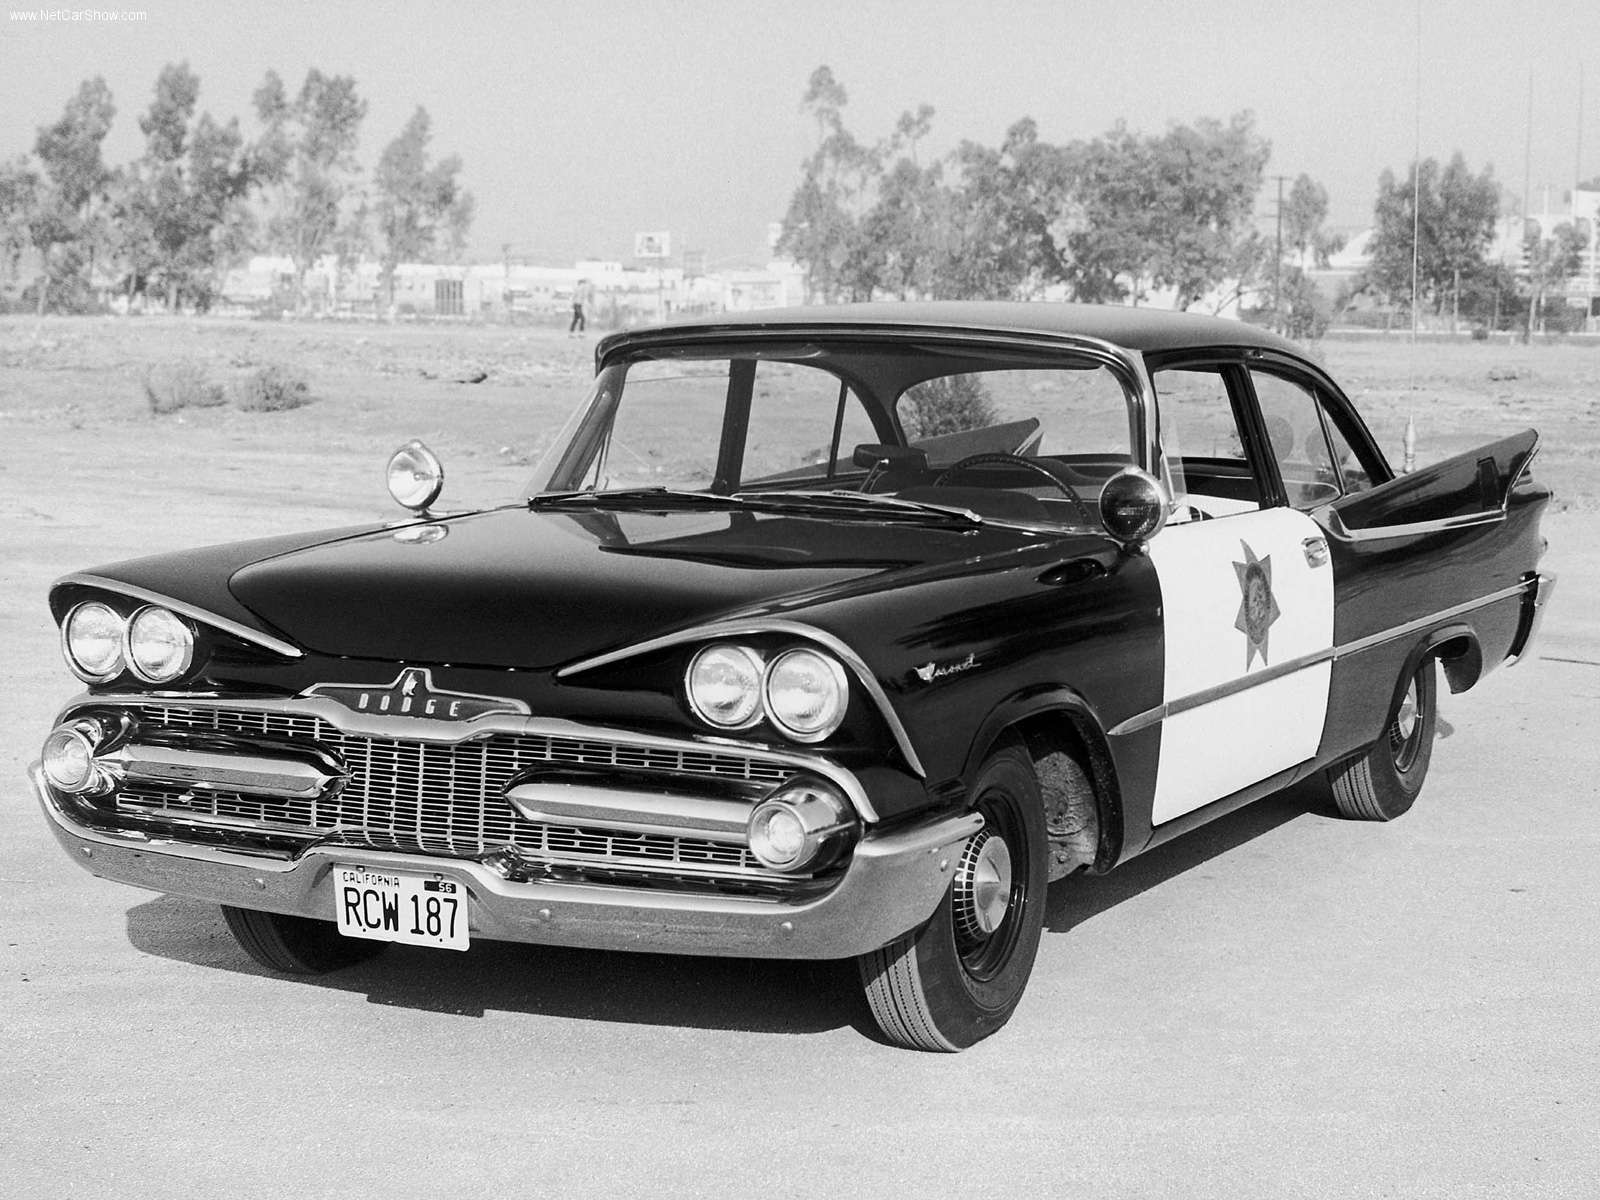 Transpress Nz 1959 Dodge Coronet 1949 2 Door A Police Model Here In The Livery Of California Highway Patrol